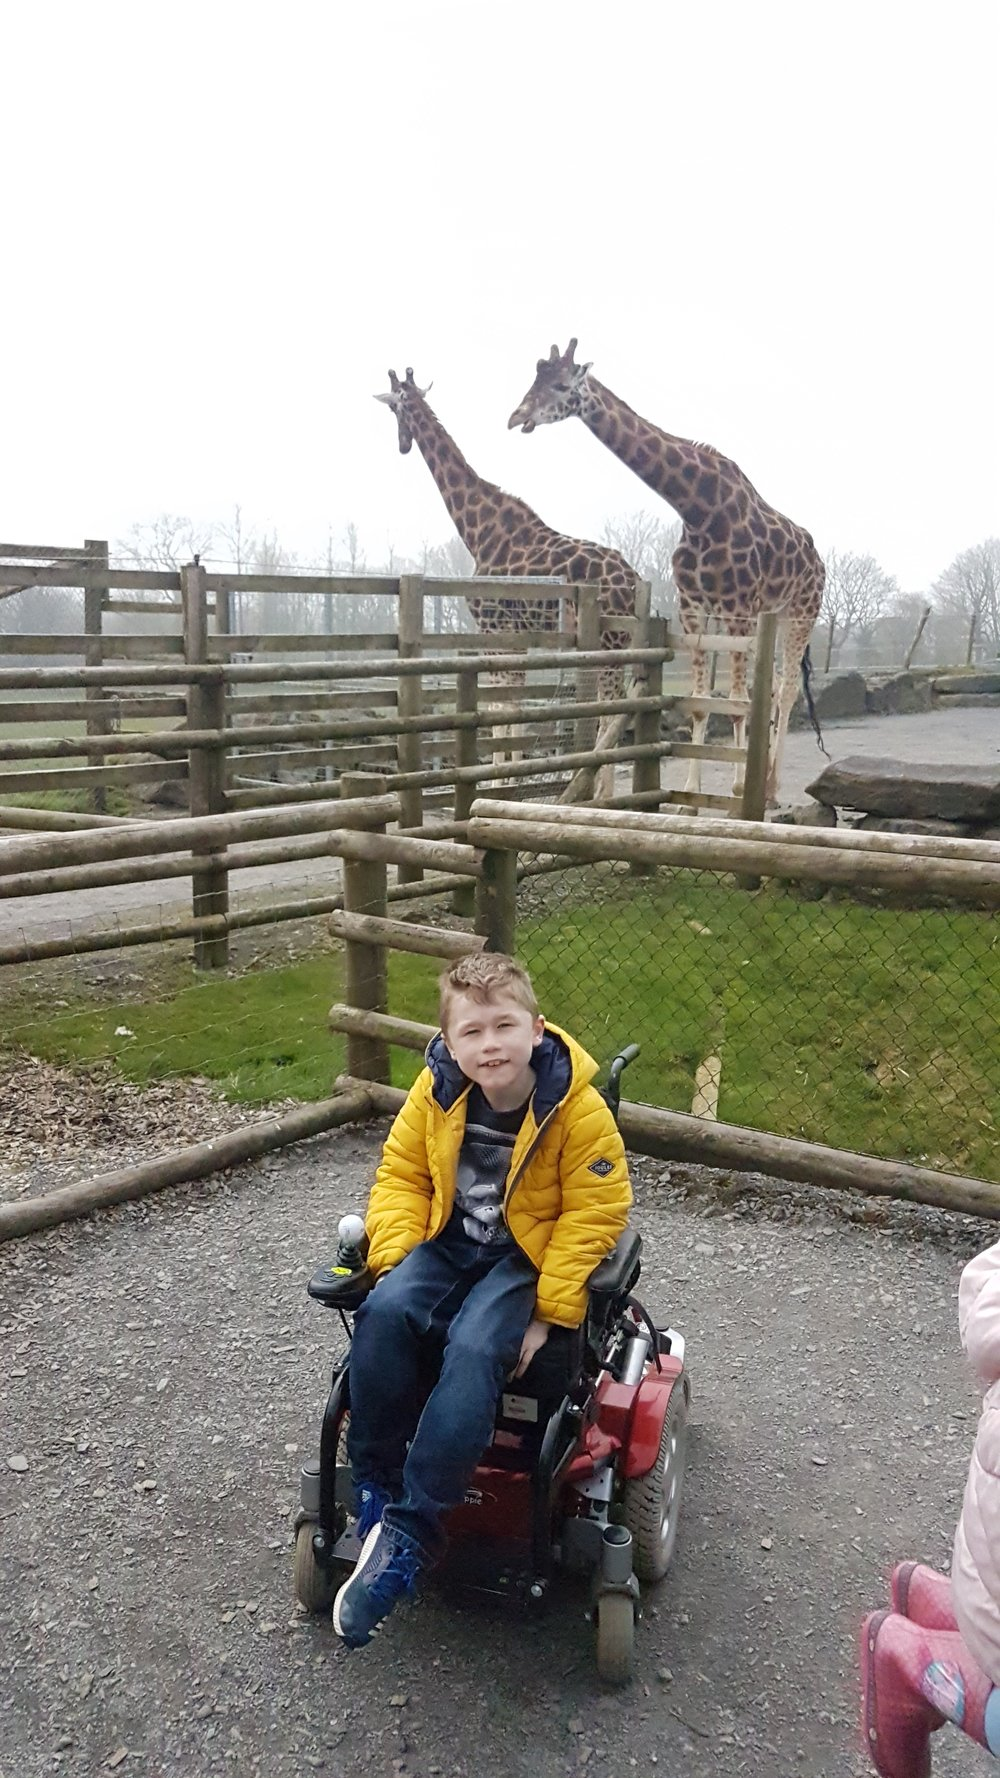 Charlie loved the giraftes